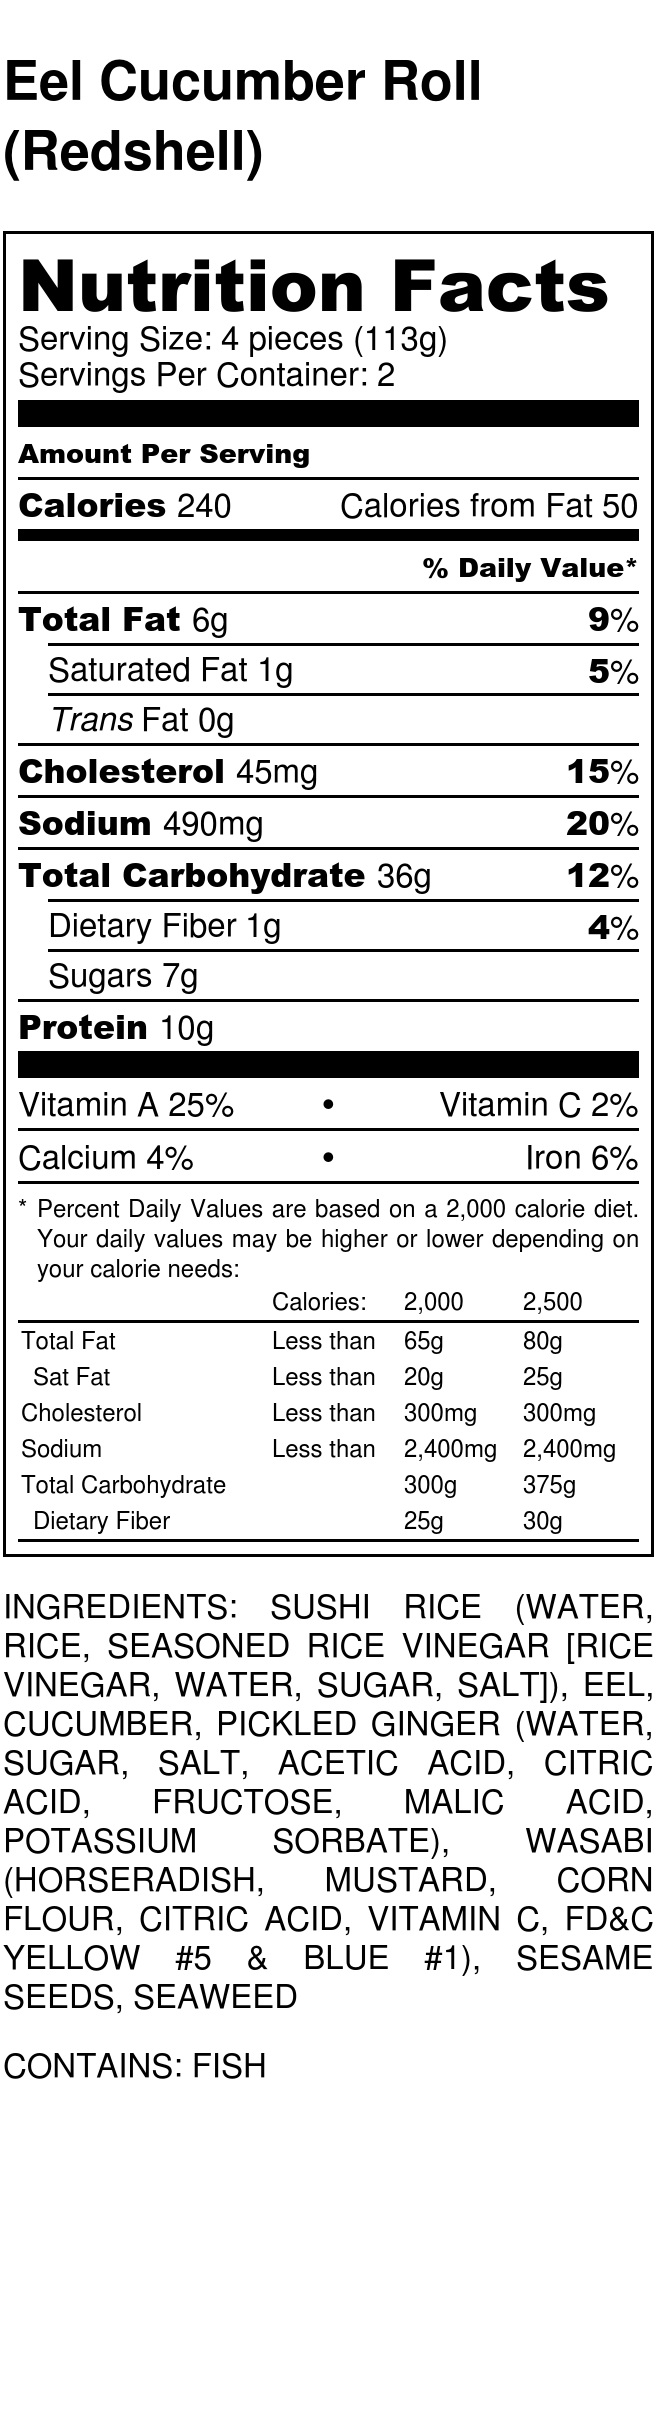 Whole Foods Salmon Avocado Roll Nutrition